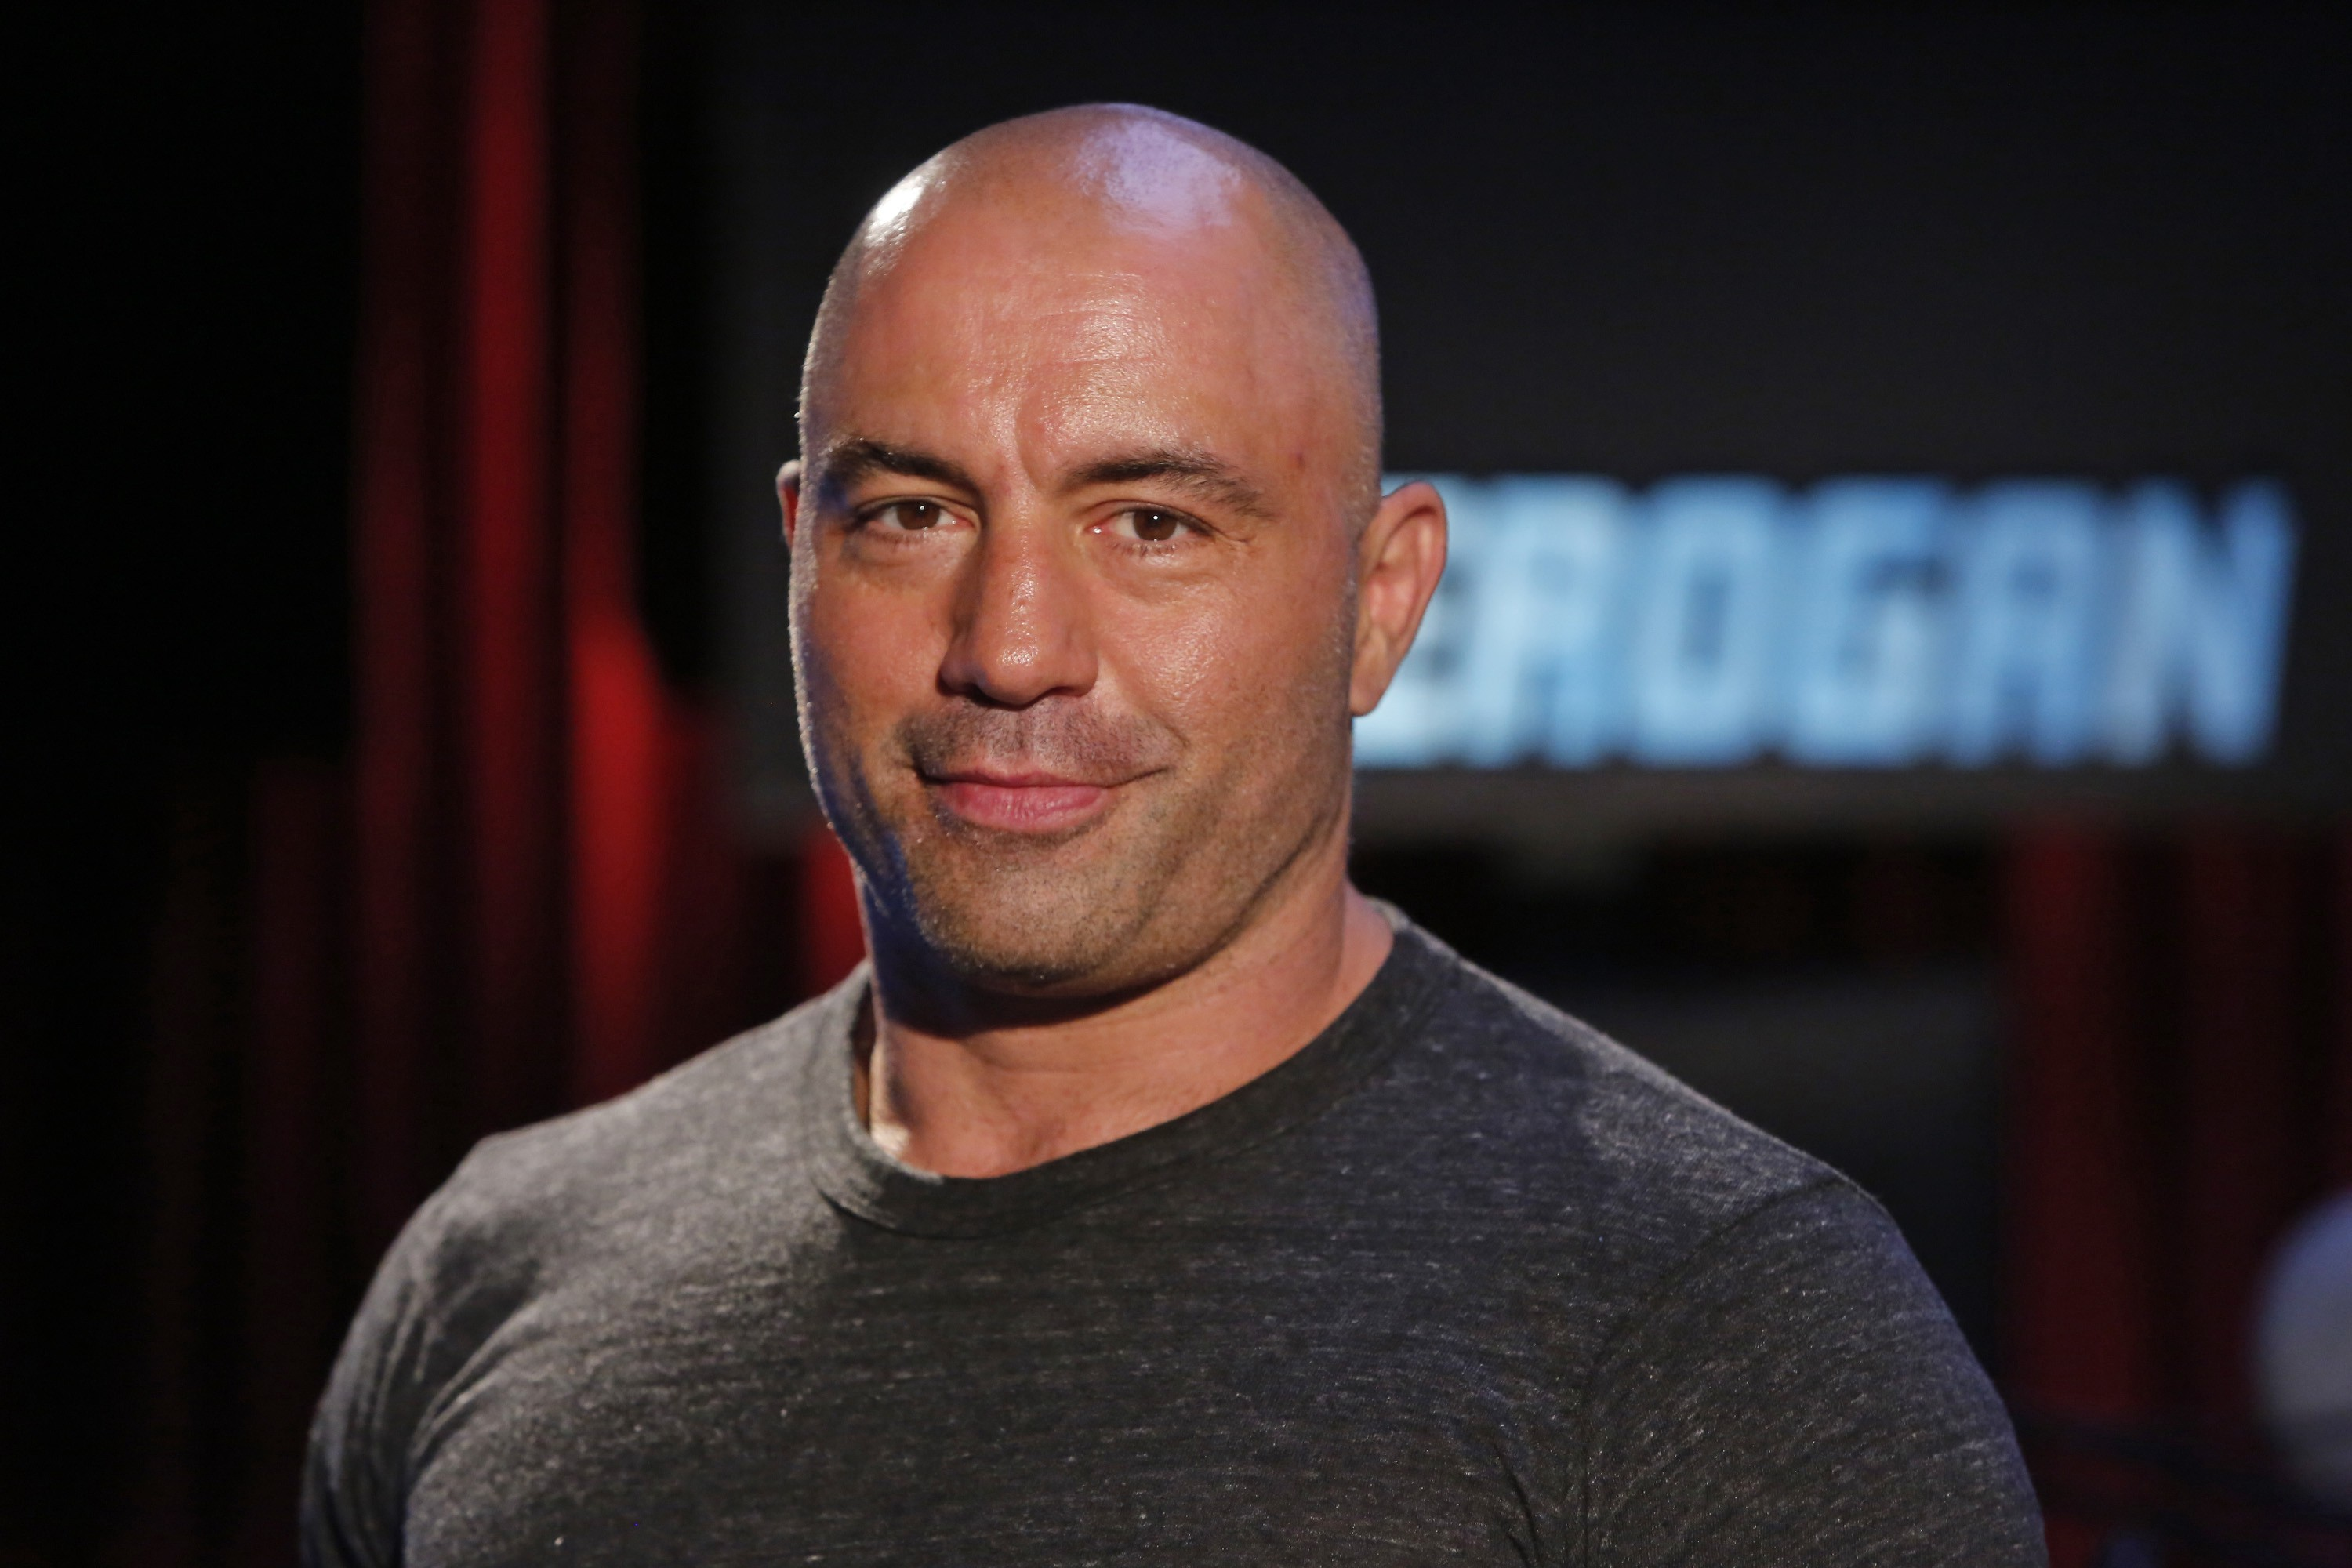 Joe Rogan: Biography & Net Worth. Joe Rogan was born Joseph James ...